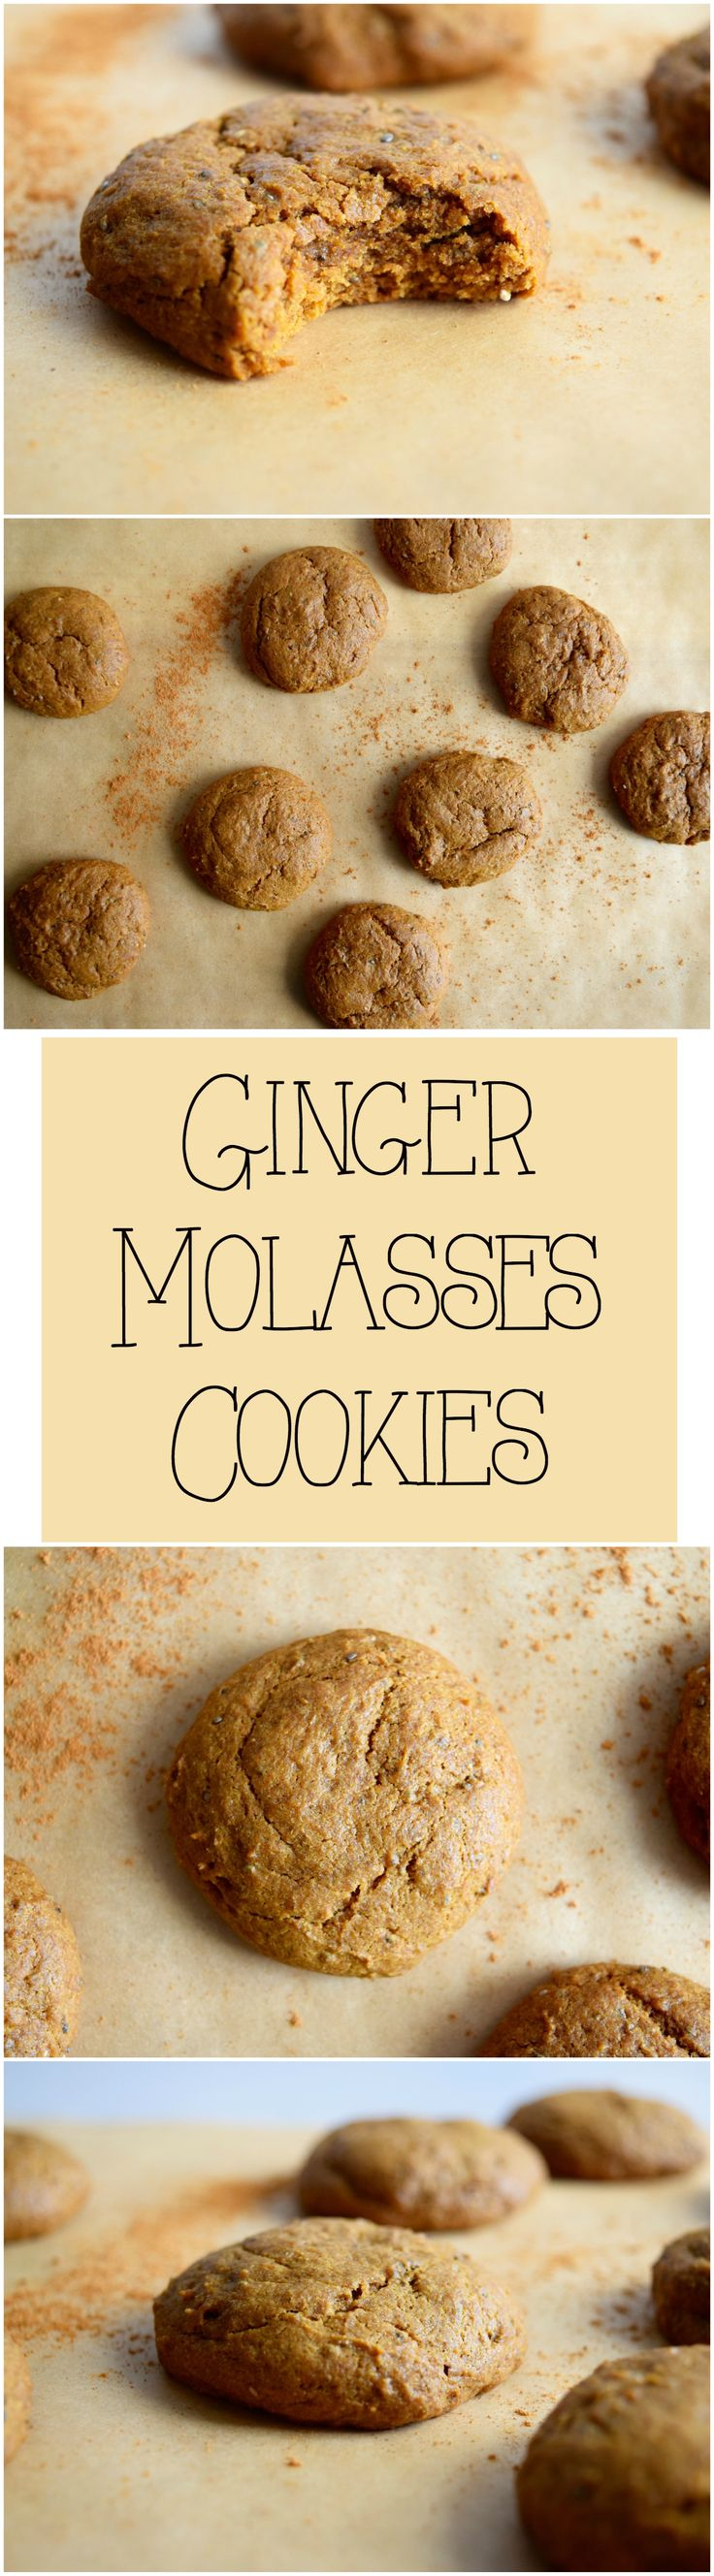 Ginger Molasses Cookies are vegan, dairy free, refined sugar free, and so delicious! The perfect holiday cookie  #vegancookies #gingercookies #vegandesserts #veganrecipes #sugarfree #dairyfree #holidaycookies